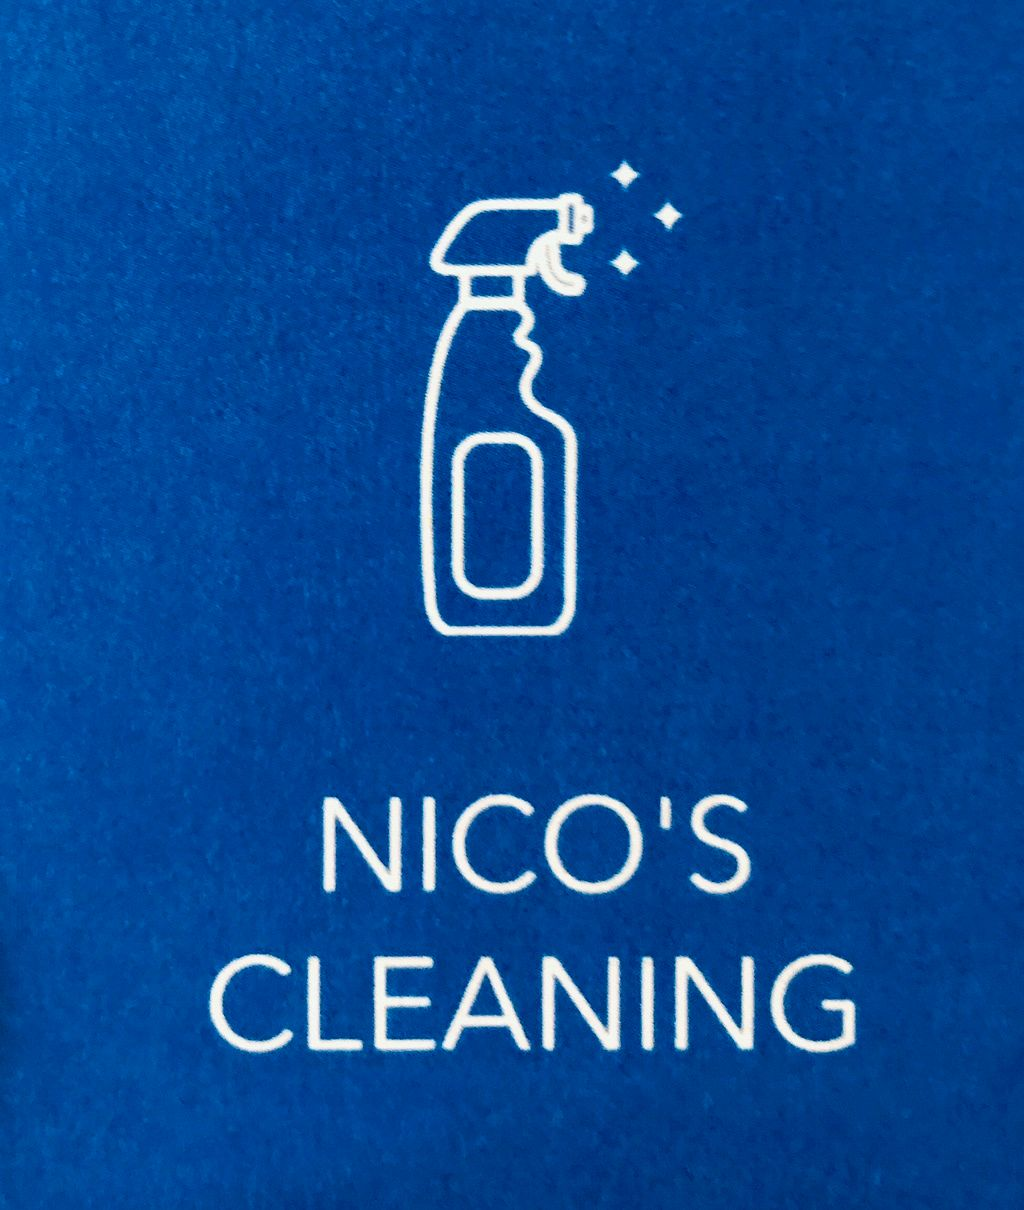 Nico's Cleaning